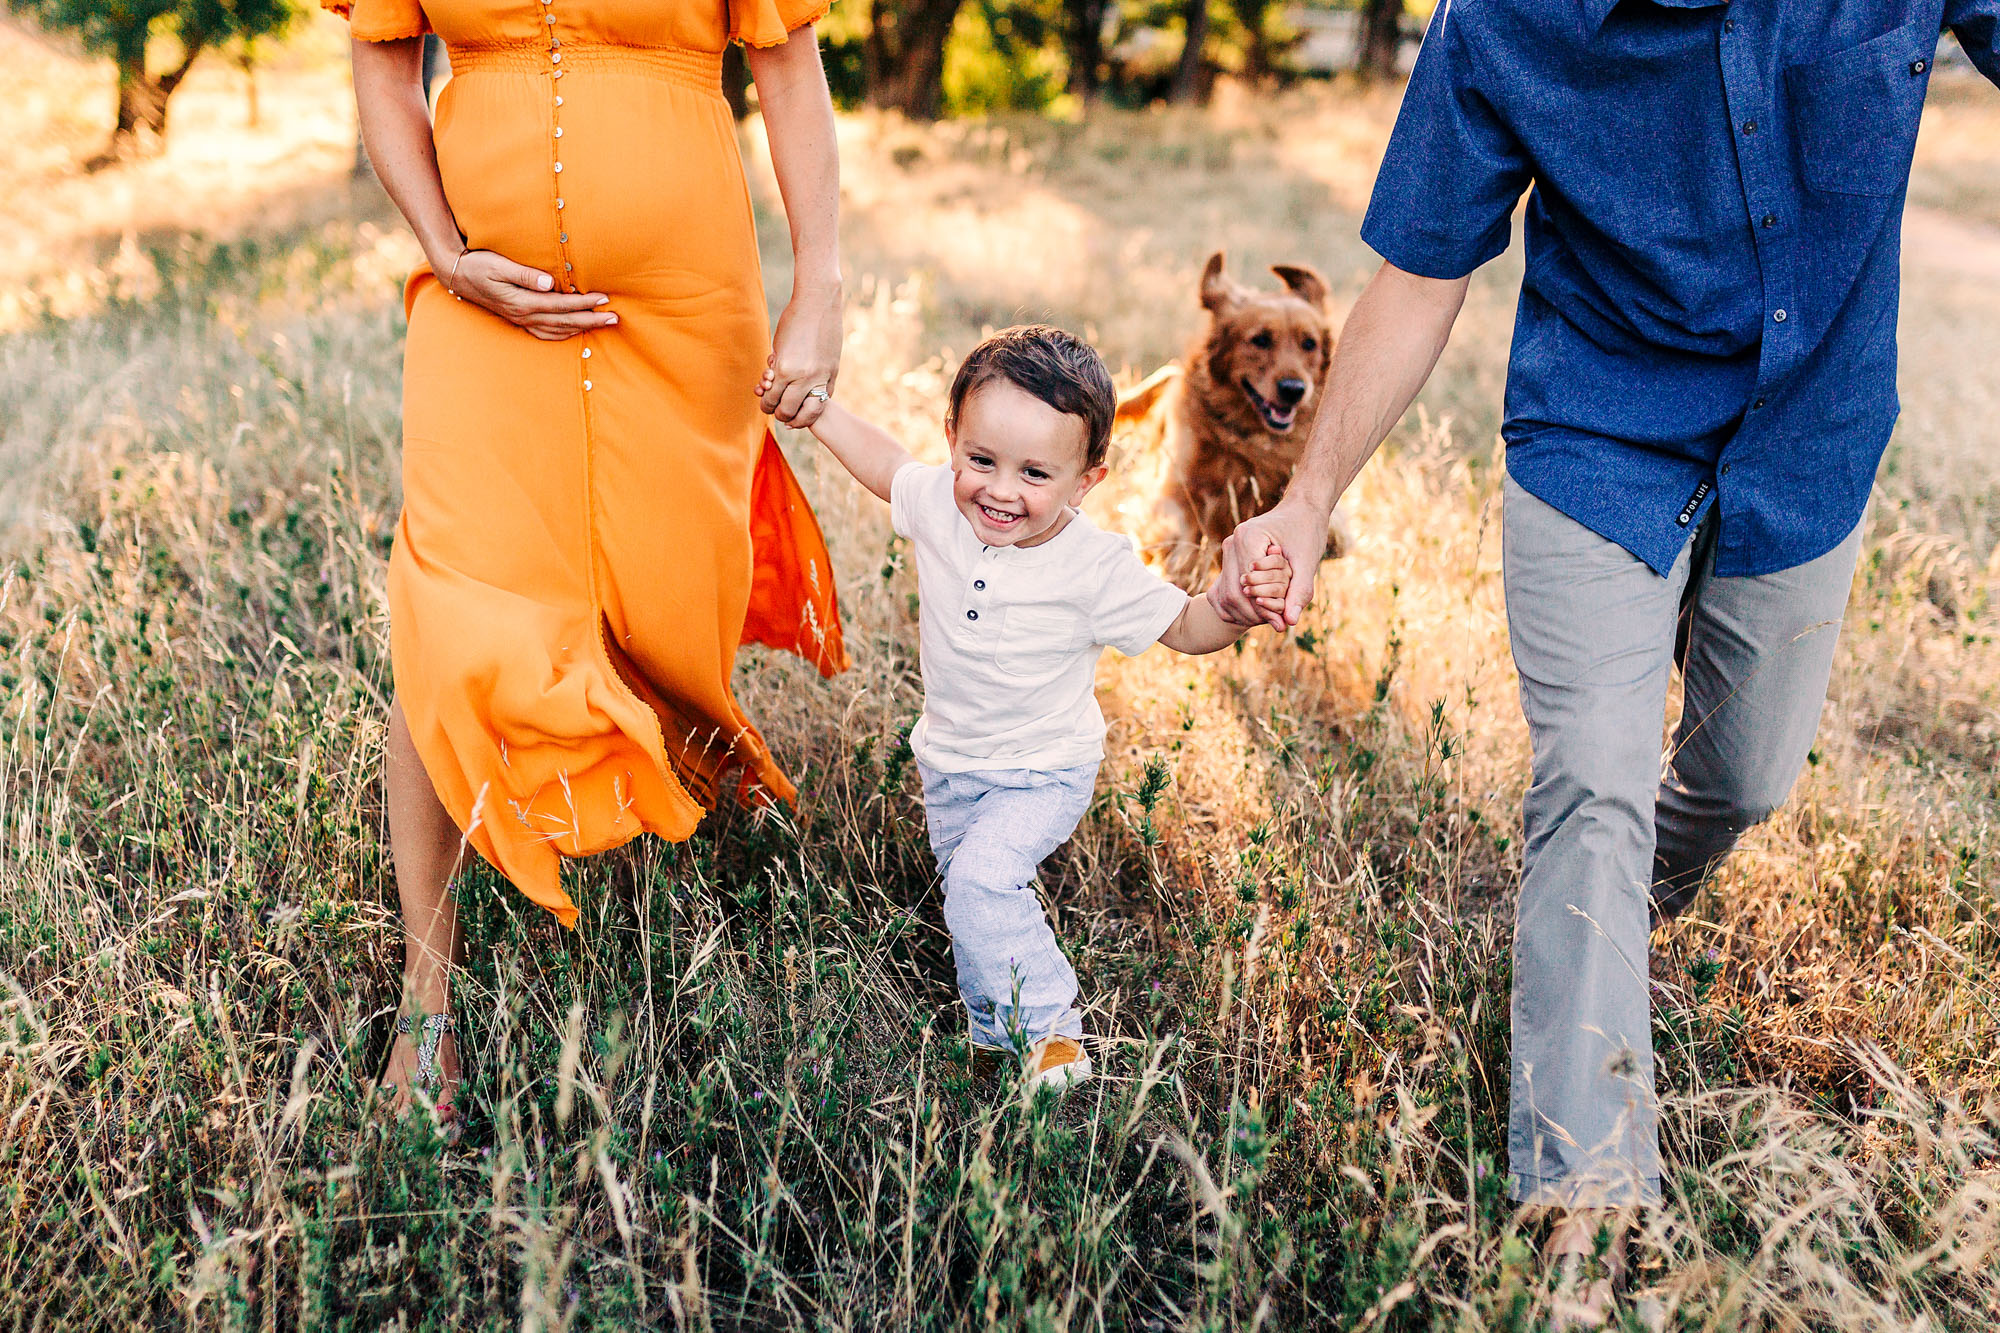 A family of three runs and plays together during lifestyle maternity portraits with photographer Amy Wright in Roseville, California.